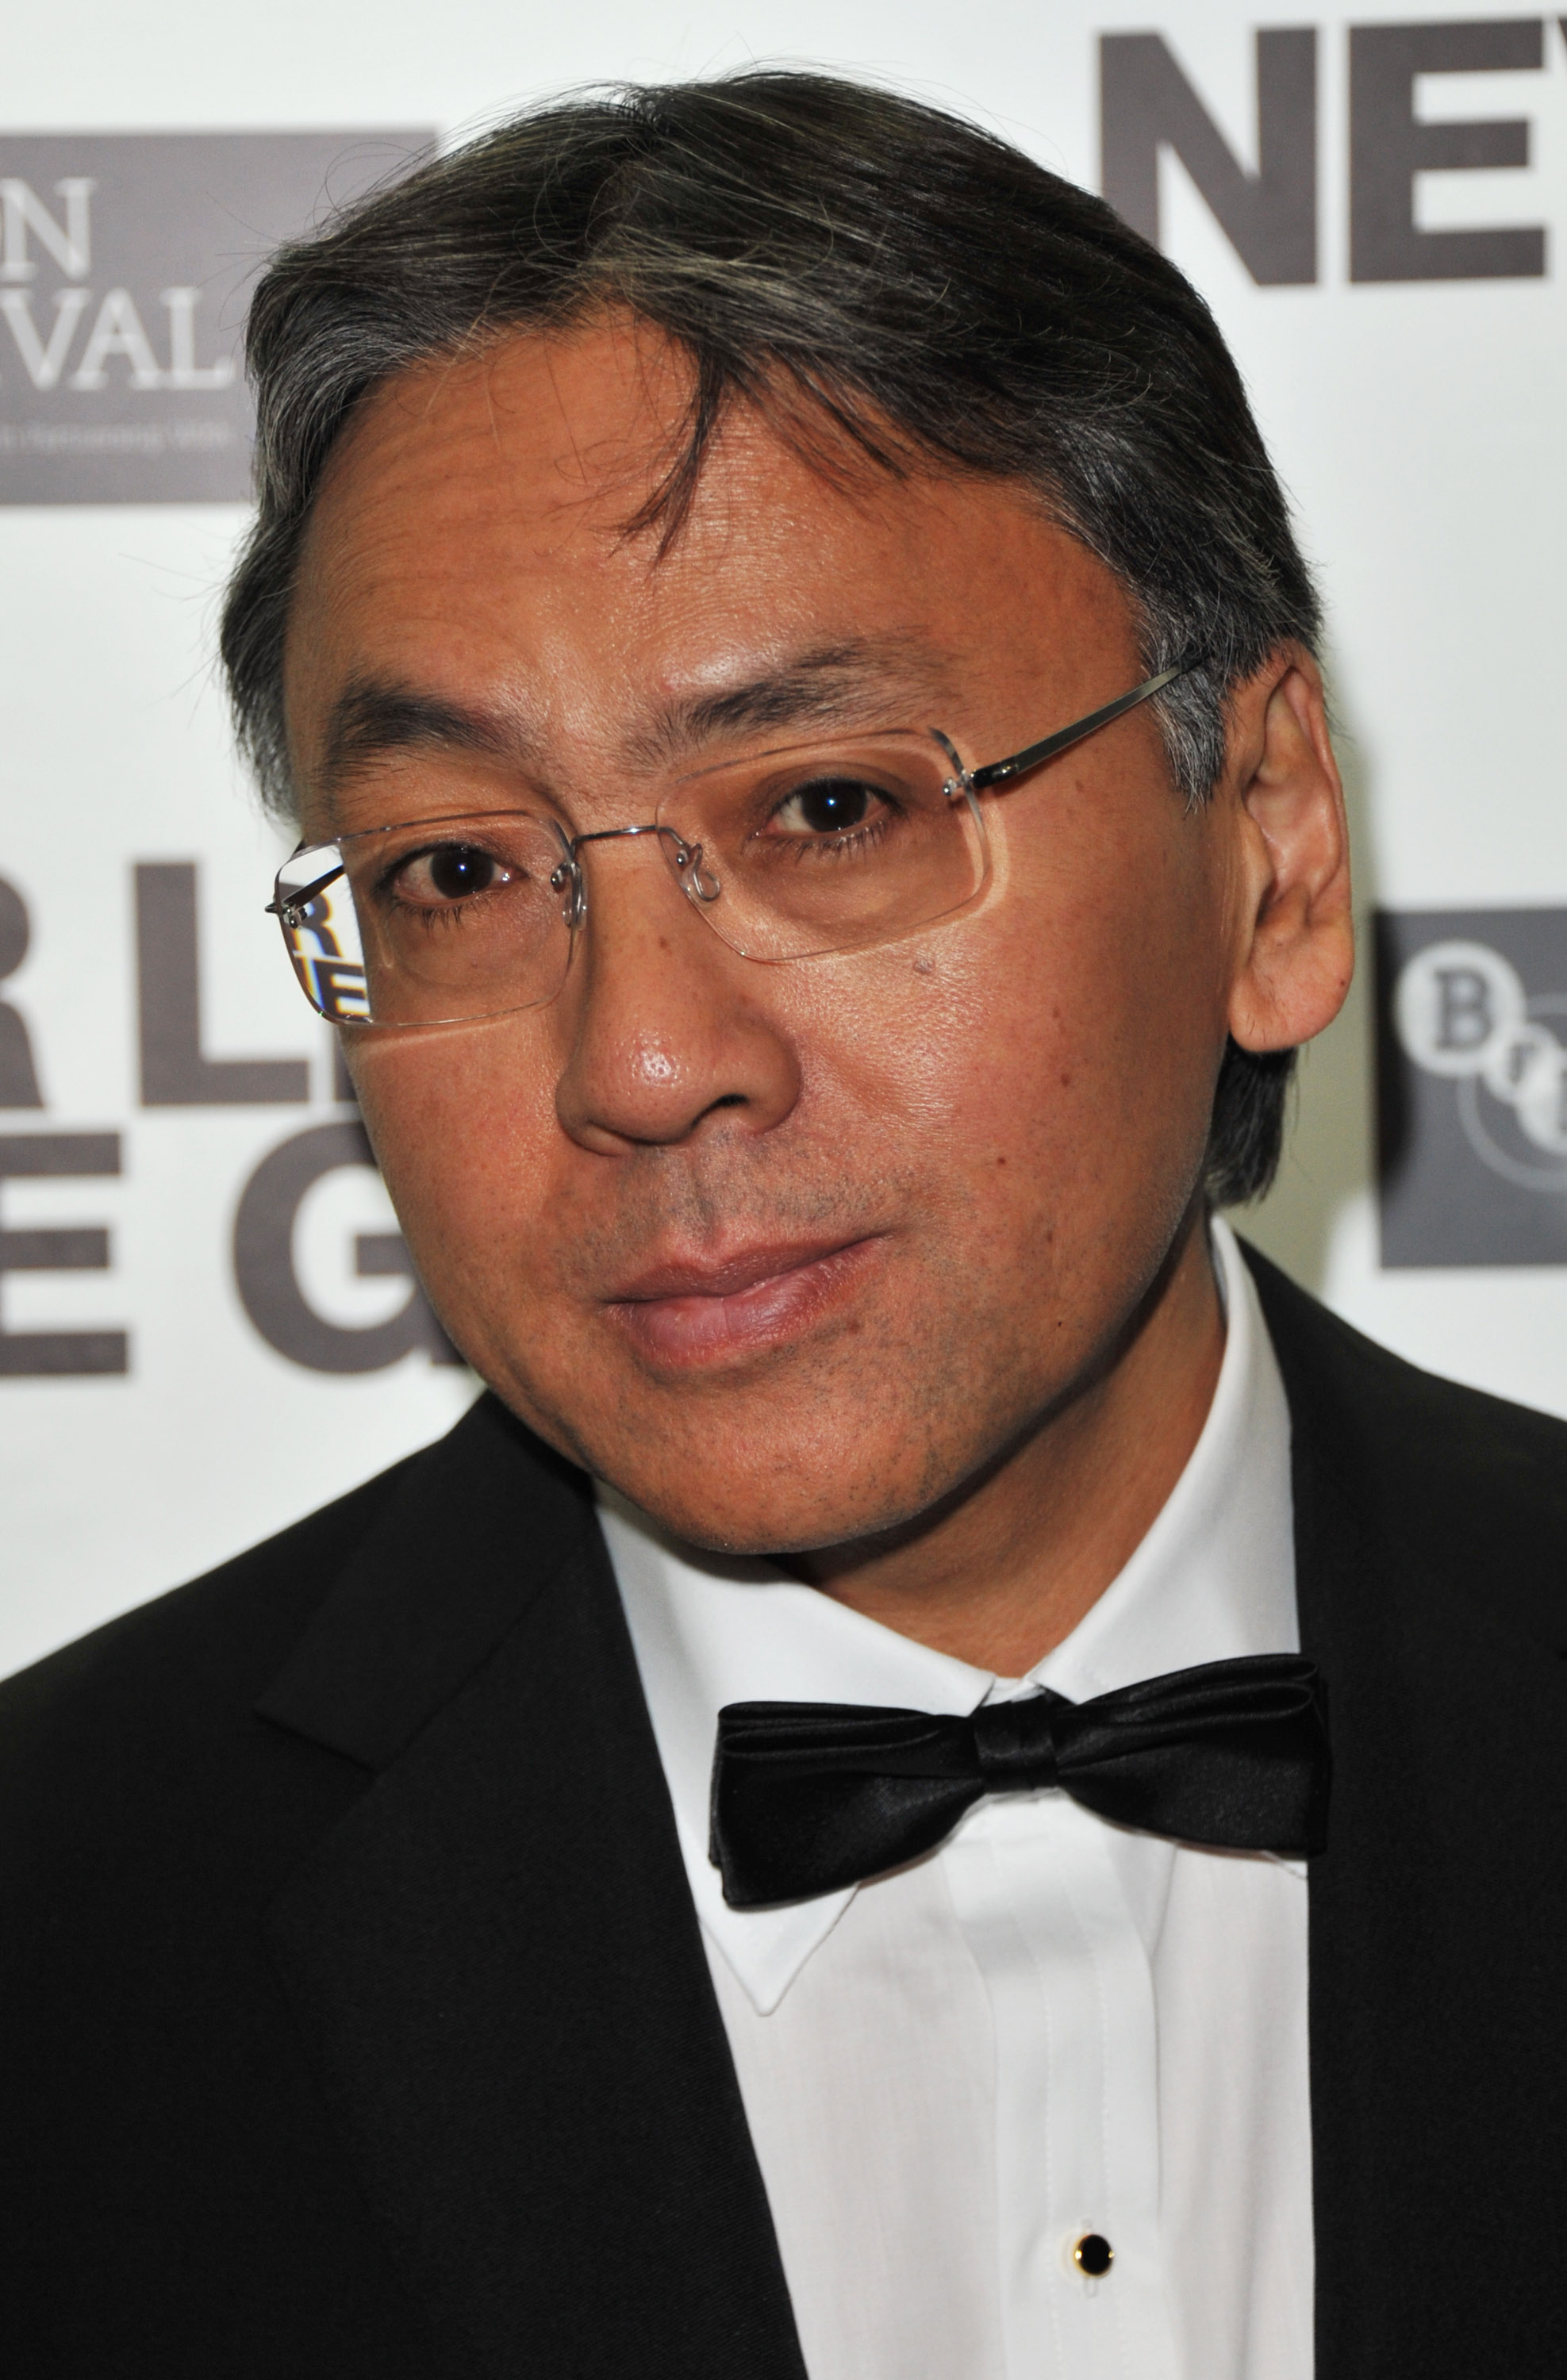 Kazuo Ishiguro attends the Never Let Me Go premiere during the 54th BFI London Film Festival after party at Saatchi Gallery on October 13, 2010 in London, England.